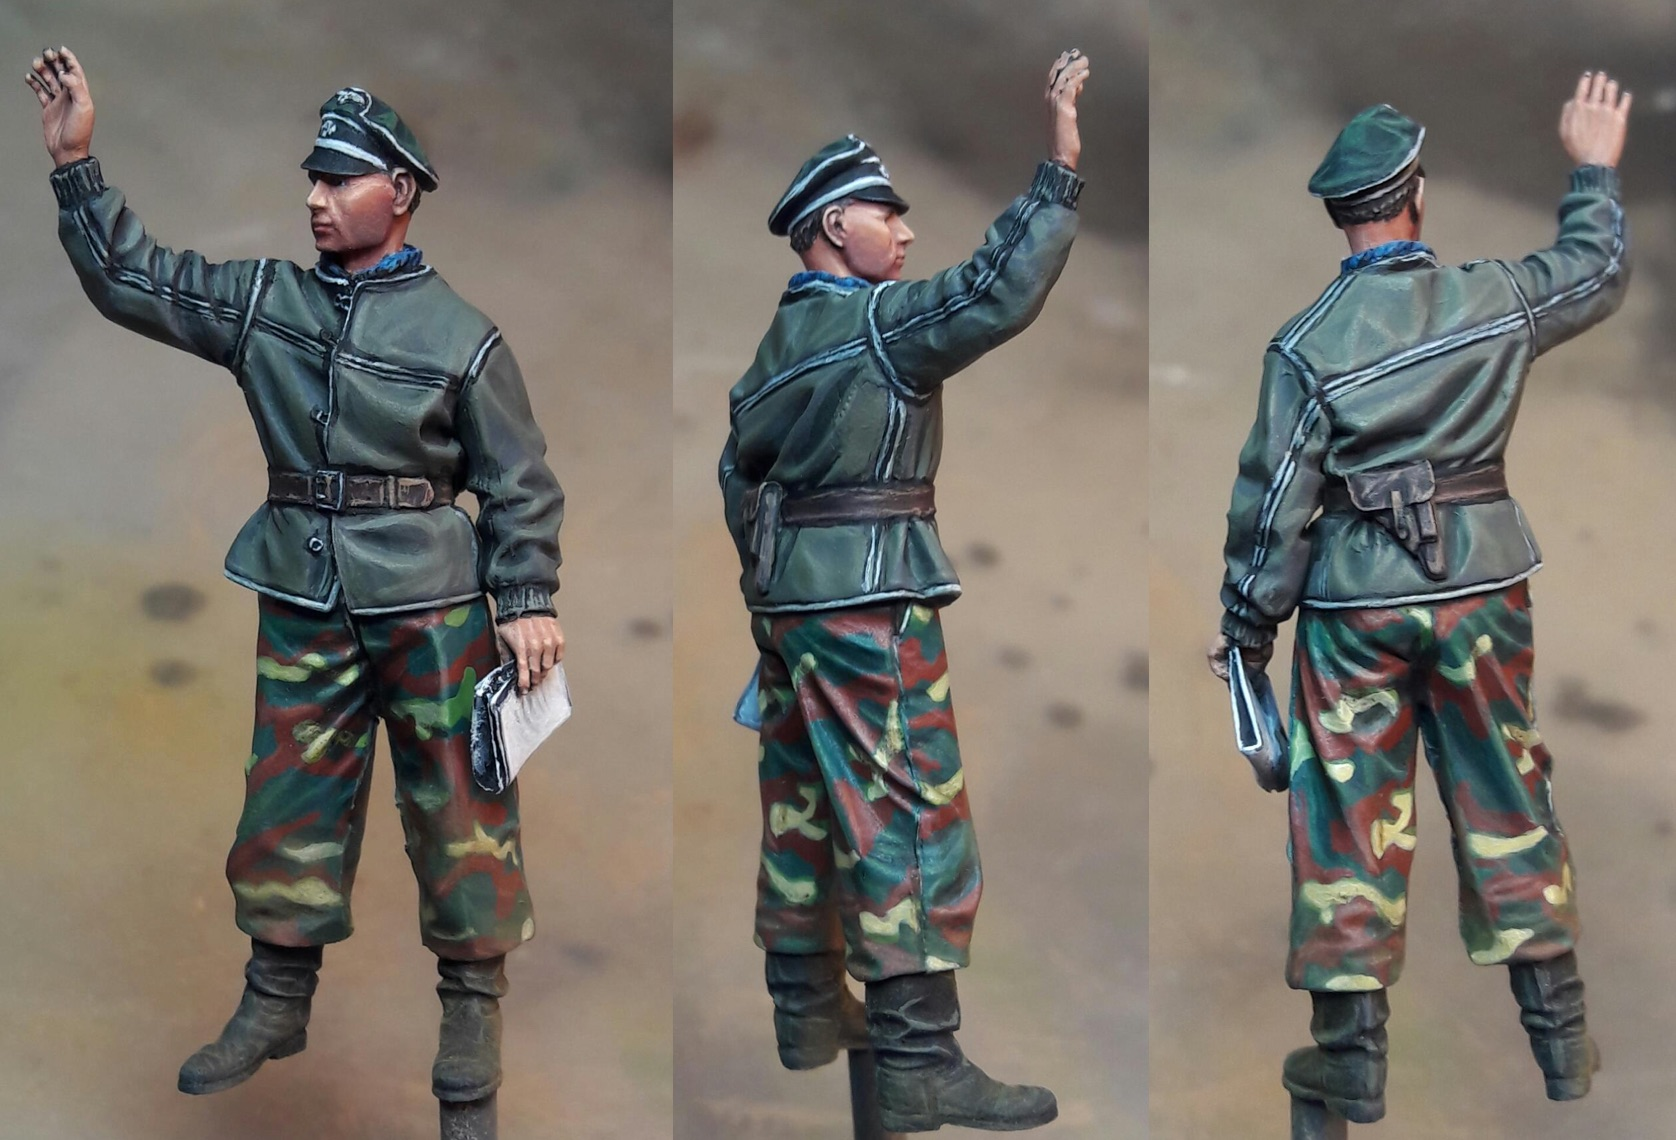 Josef Diefenthal in the Ardennes - 1/35ème 929826Officer3views1